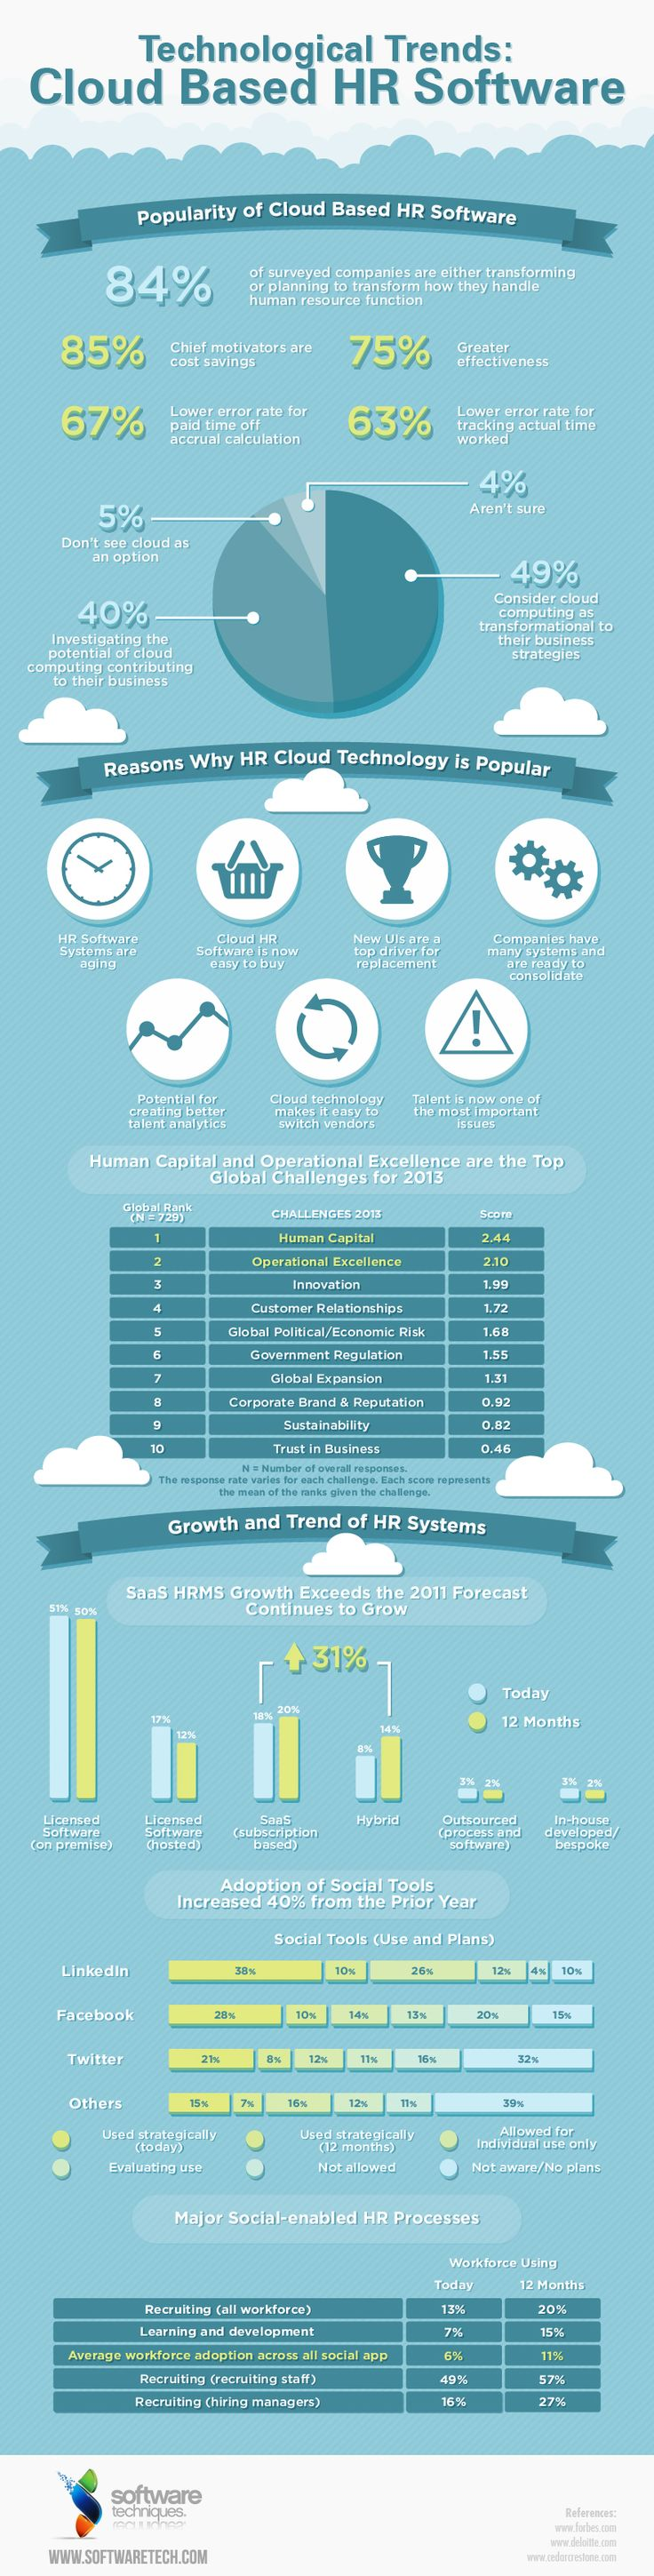 Technological Trends: Cloud Based HR Software. #Gamification #HR #Infographic